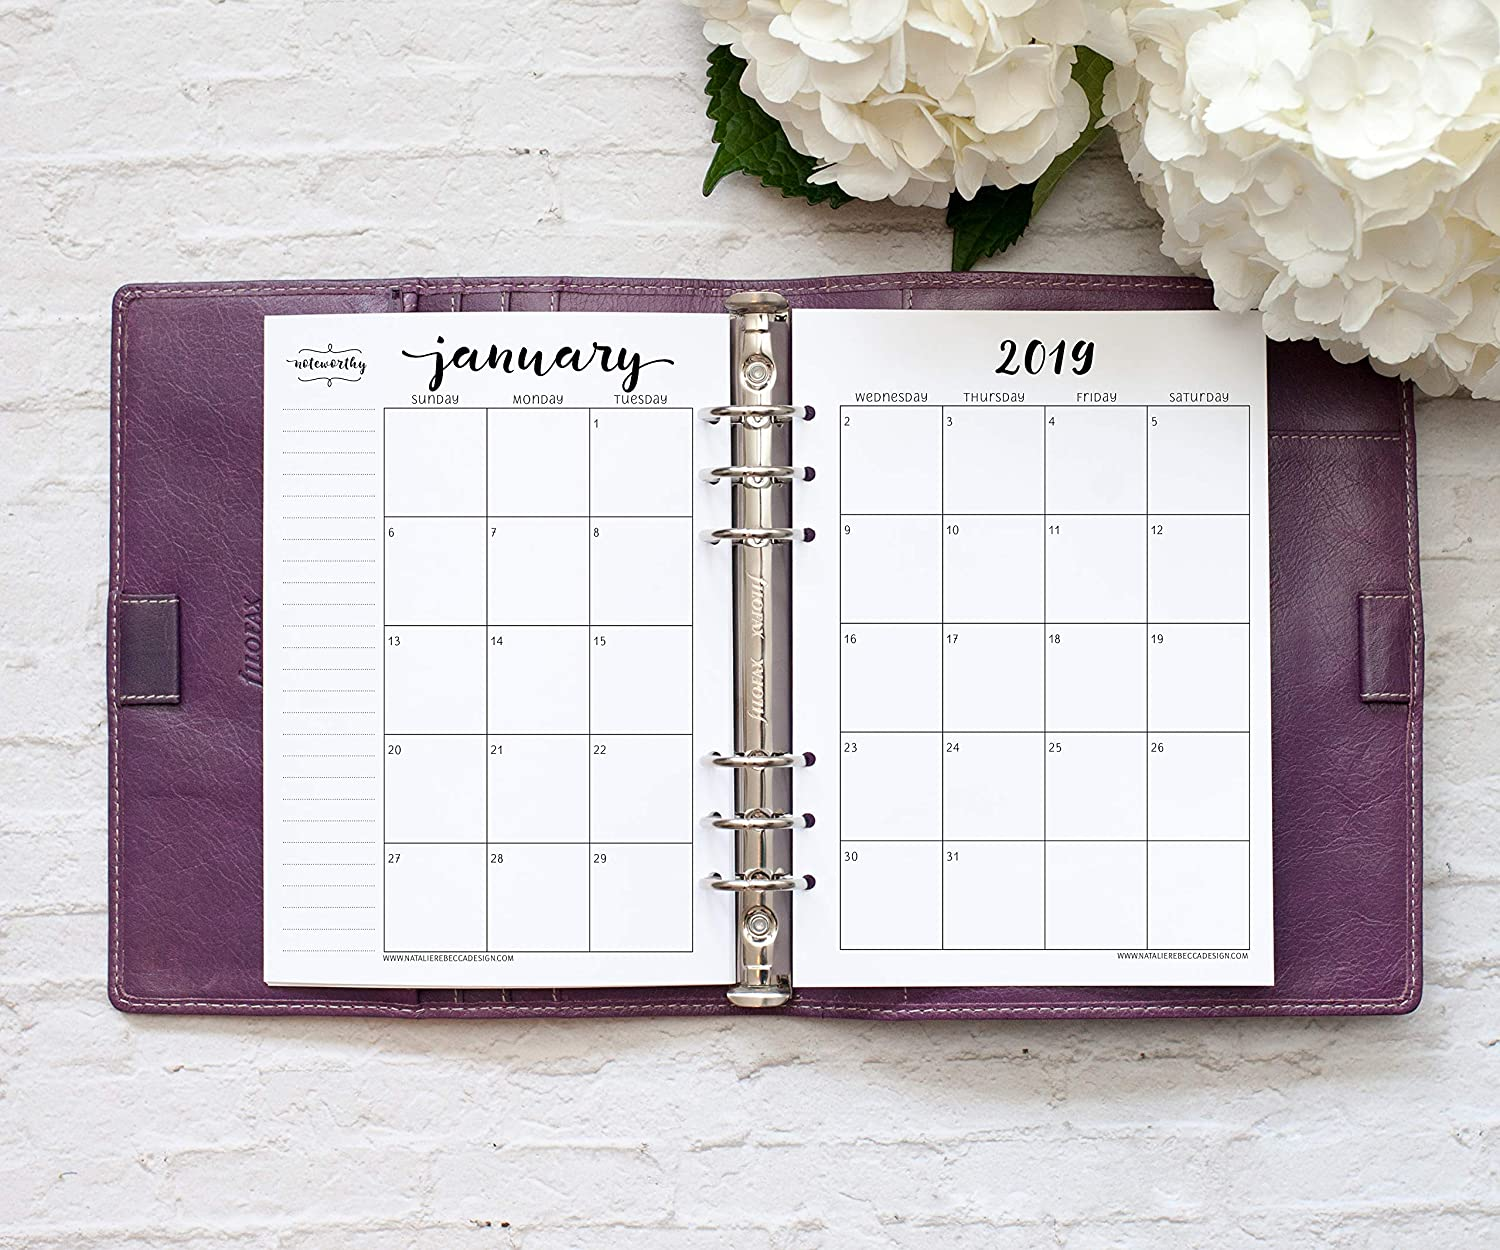 2019 Monthly Calendar for A5 Planners, fits Filofax, Kikki K, Carpe Diem Planners, 6 Ring binder, 5.8